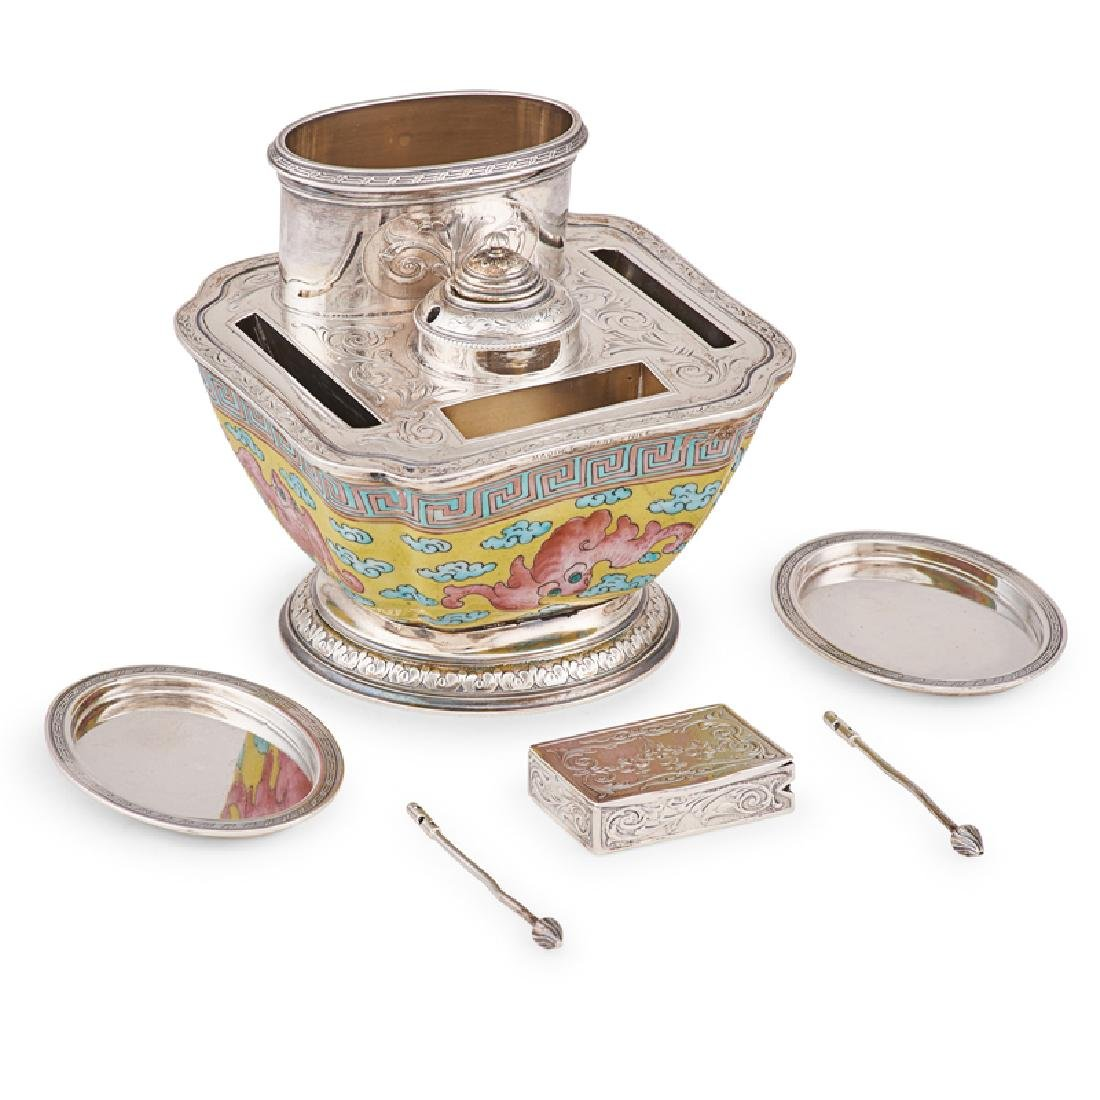 FRENCH SILVER MOUNTED PORCELAIN SMOKING SET - 2